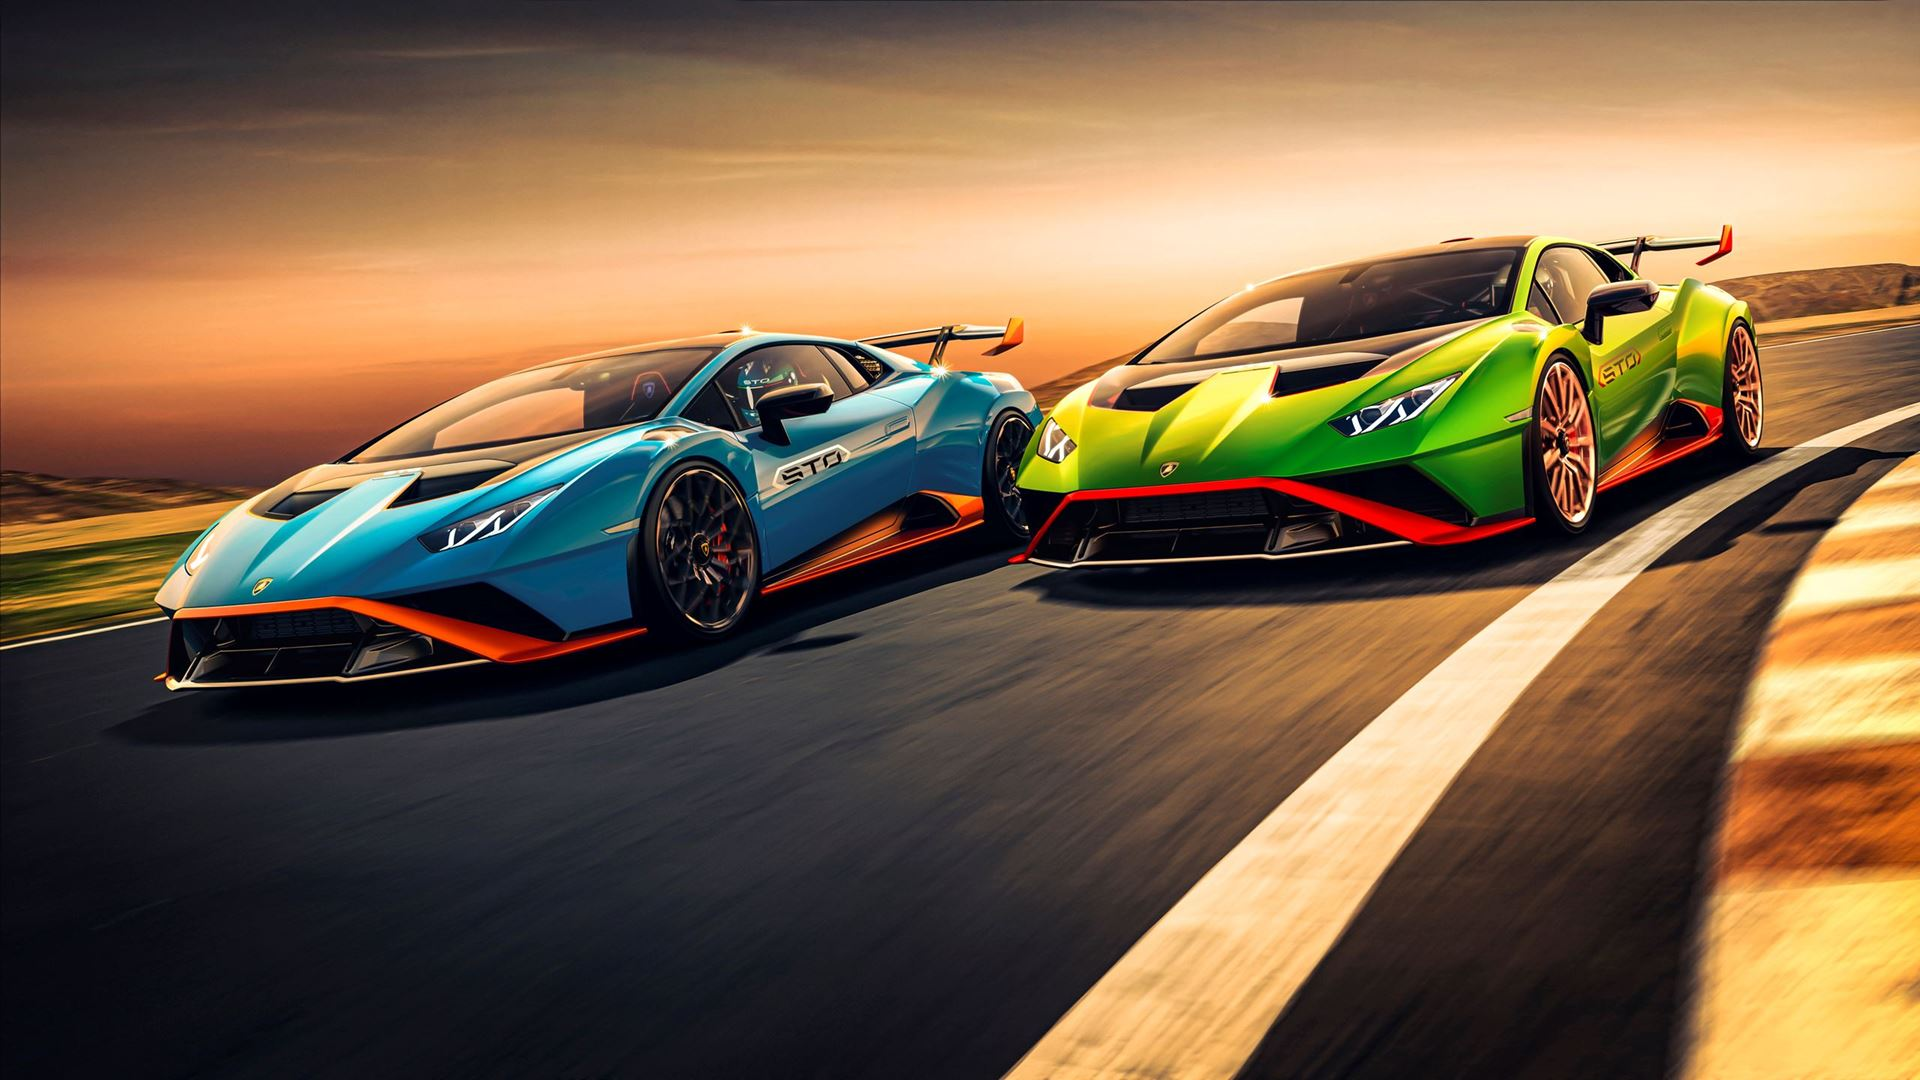 Racetrack to road: the new Lamborghini Huracán STO - Image 6